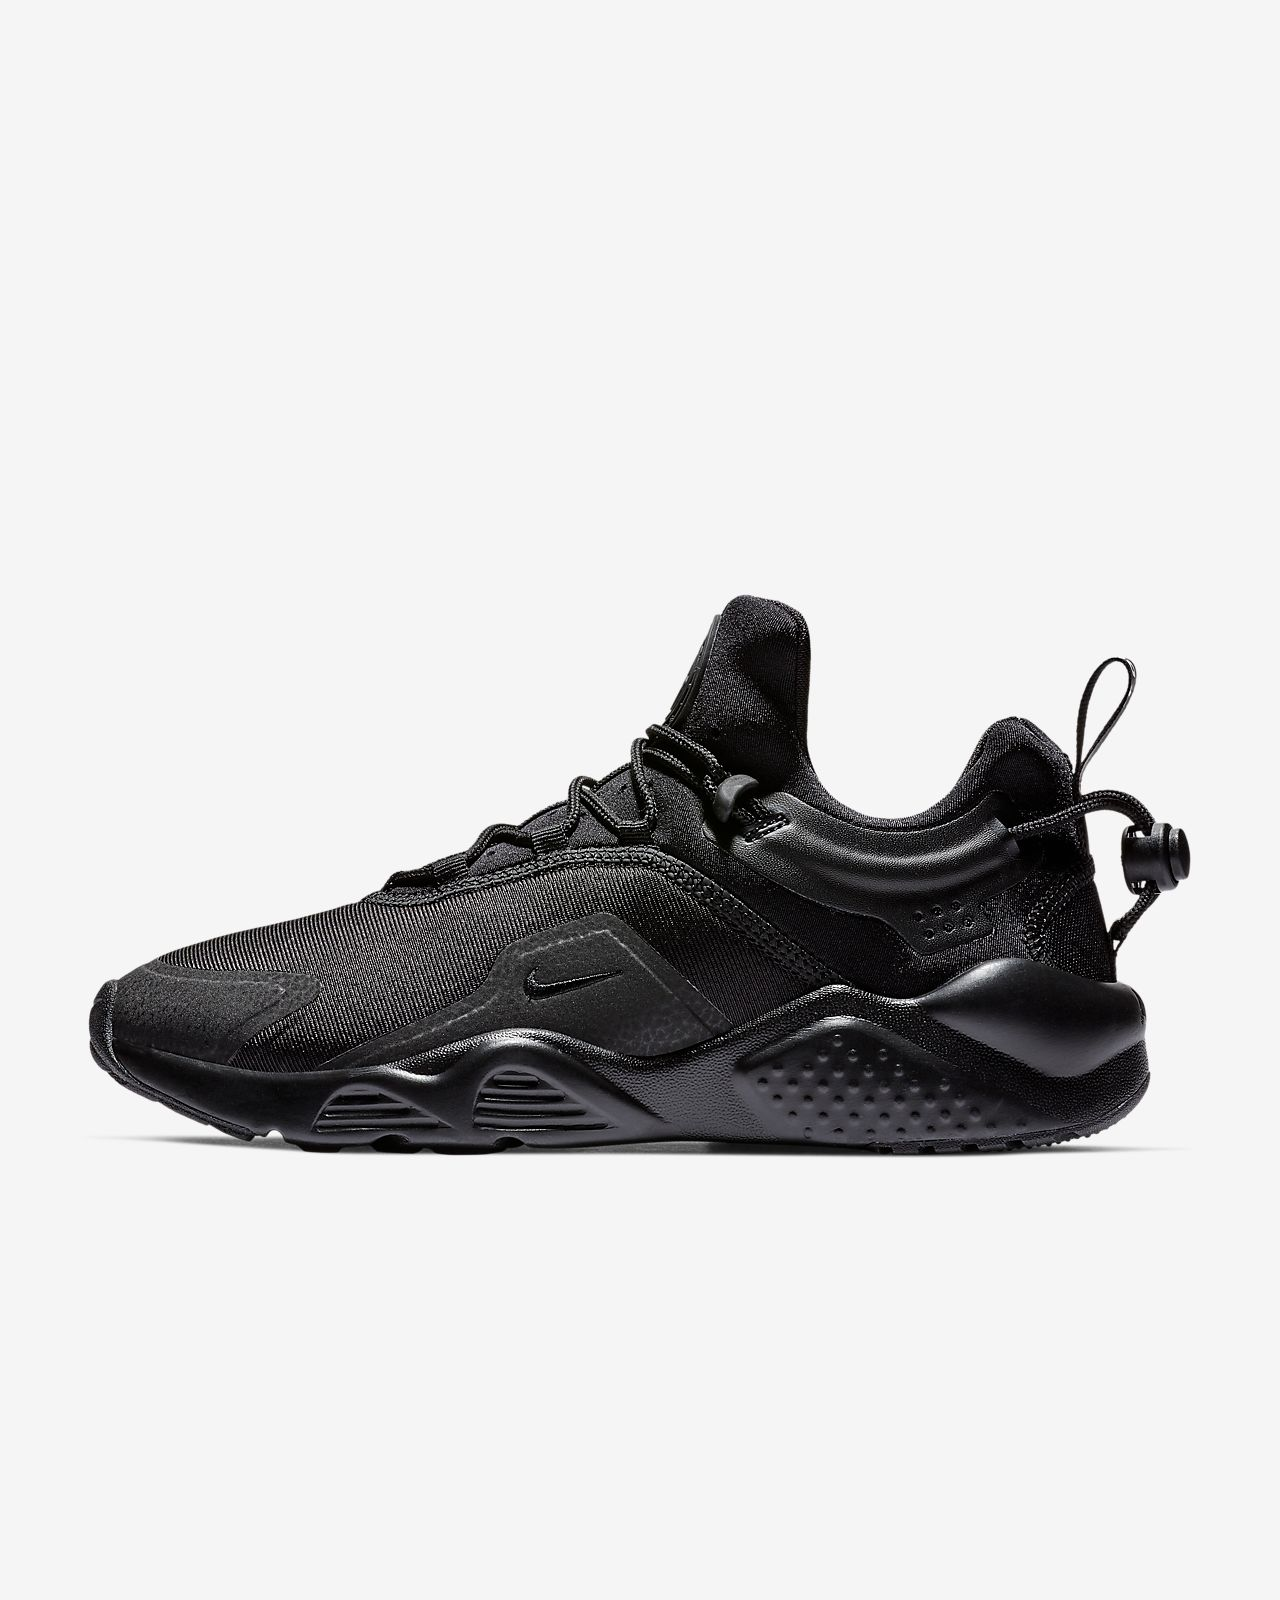 outlet store 9b0d7 ce760 ... Nike Air Huarache City Move Women s Shoe